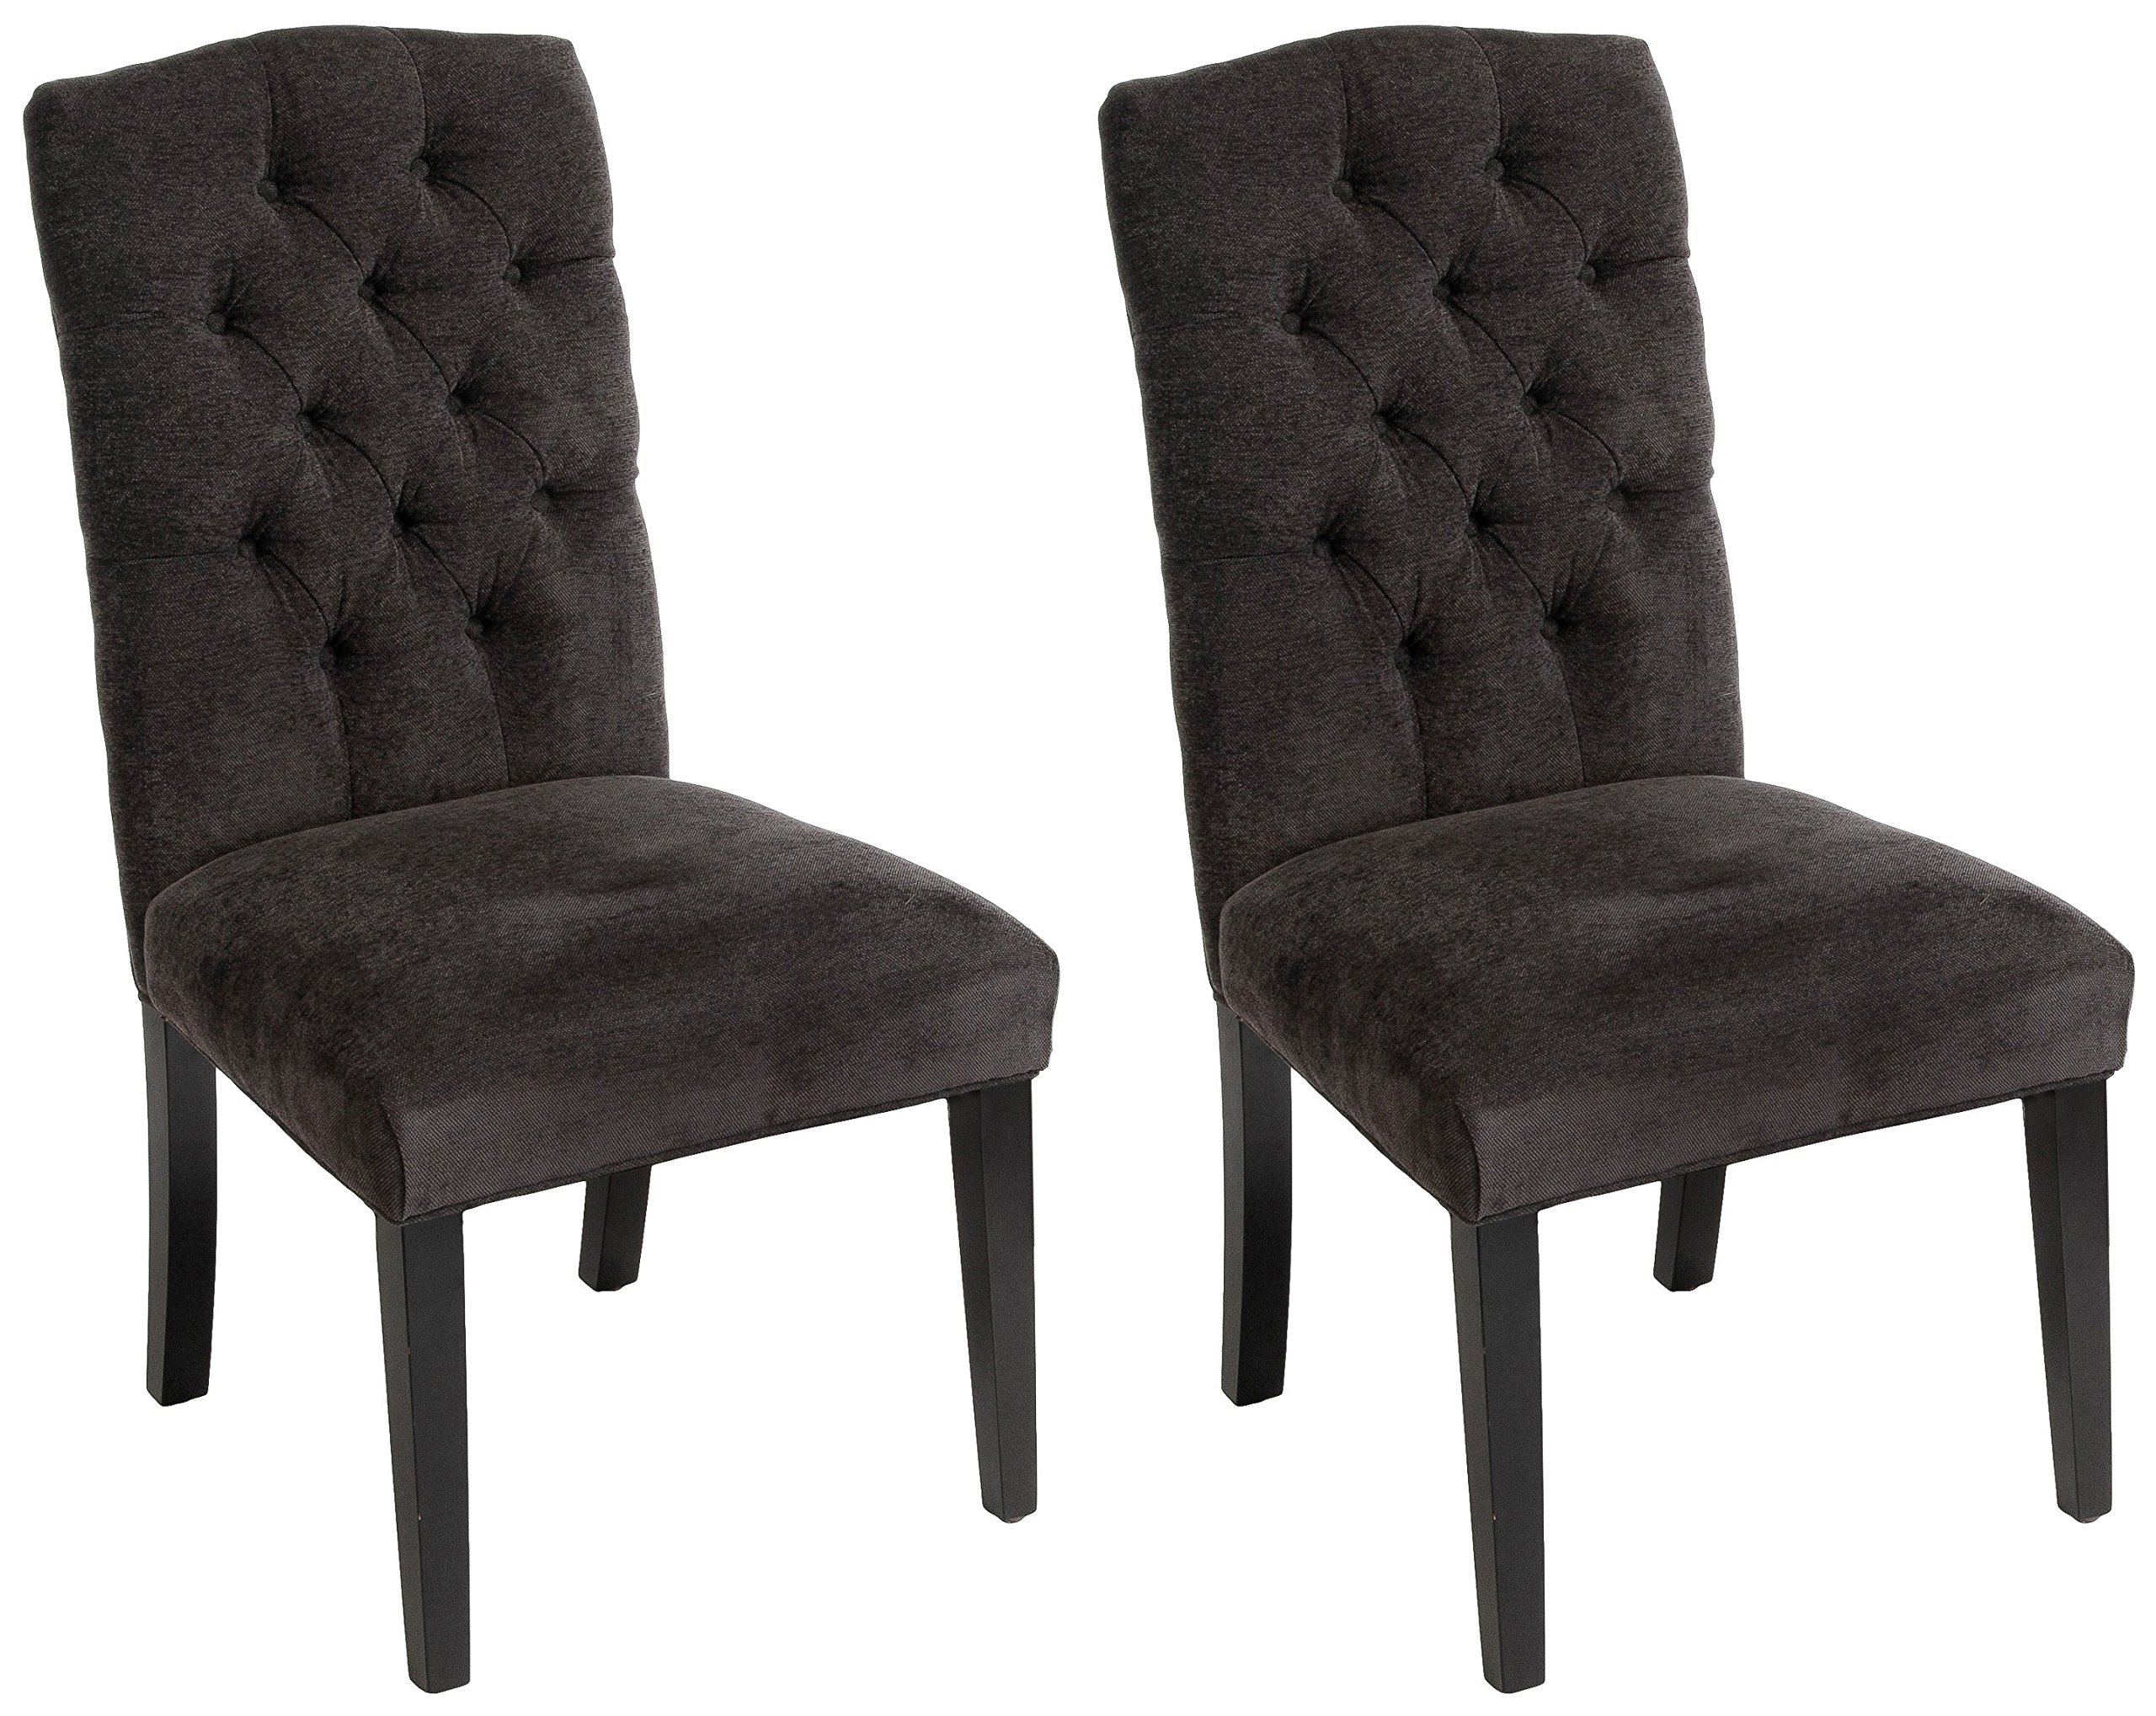 Second Hand Dining Chairs - Chair Pads & Cushions